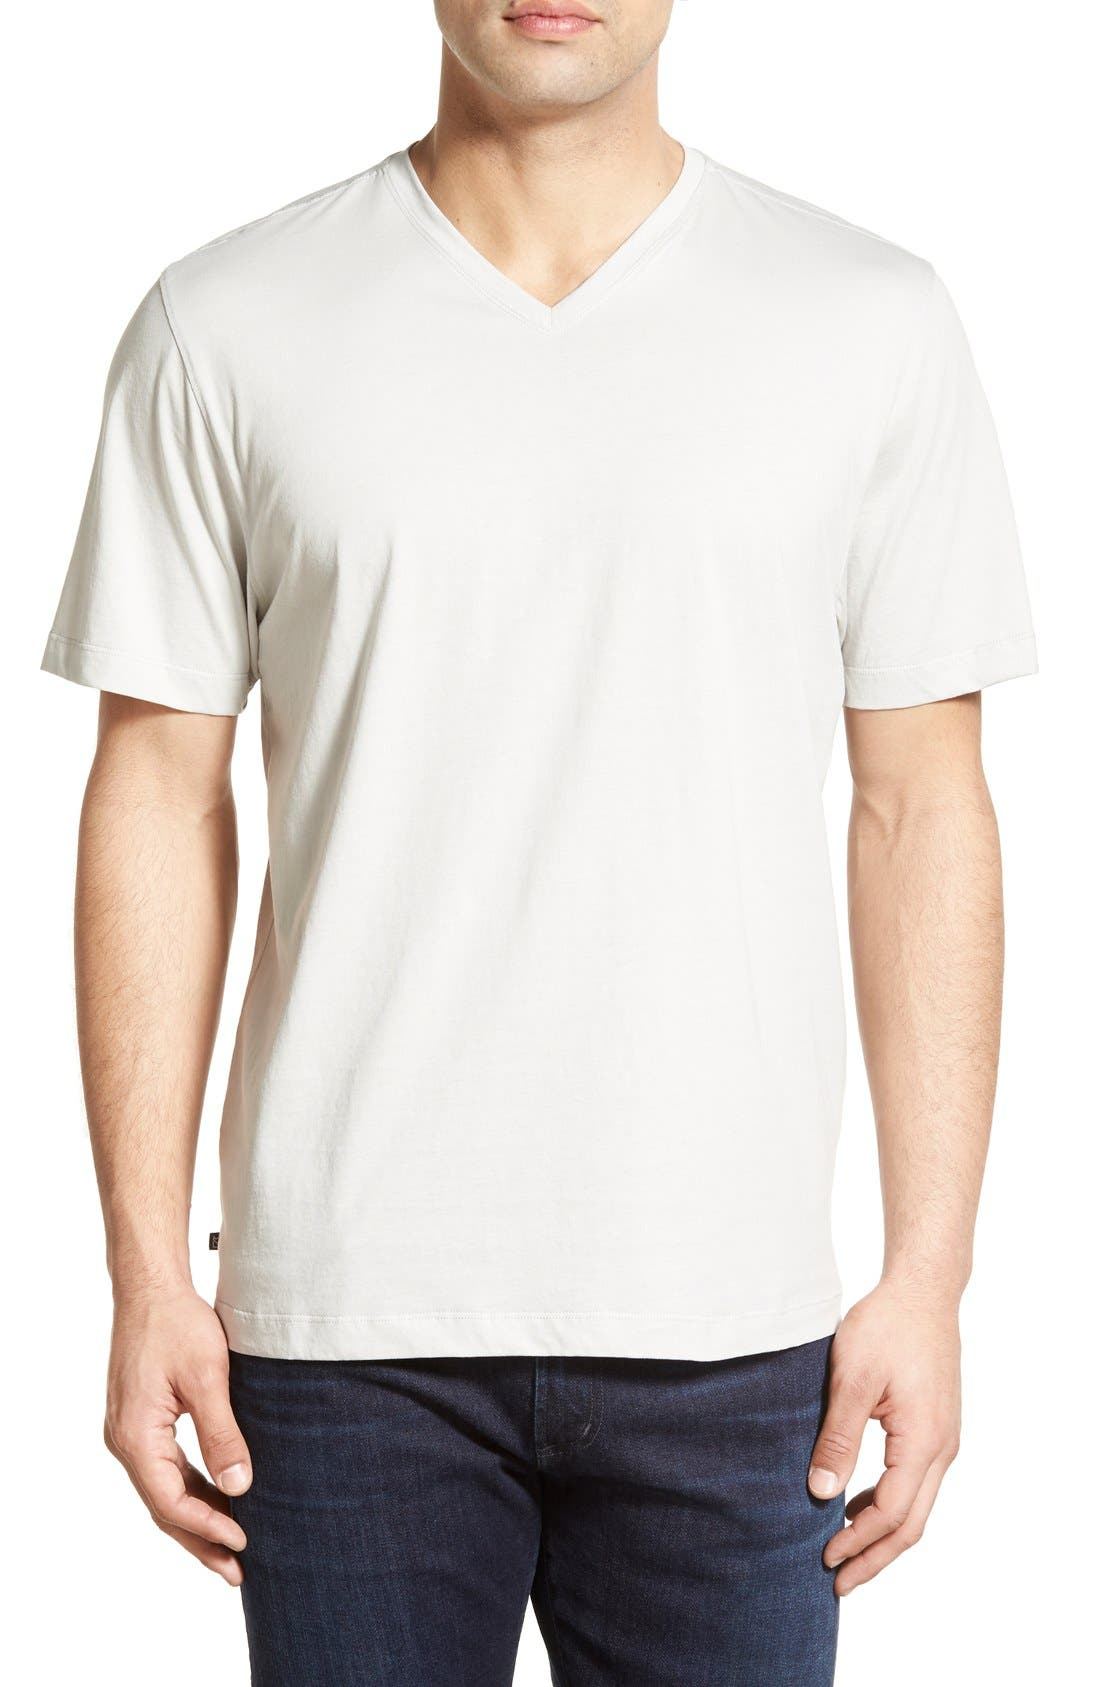 CUTTER & BUCK 'Sida' V-Neck T-Shirt